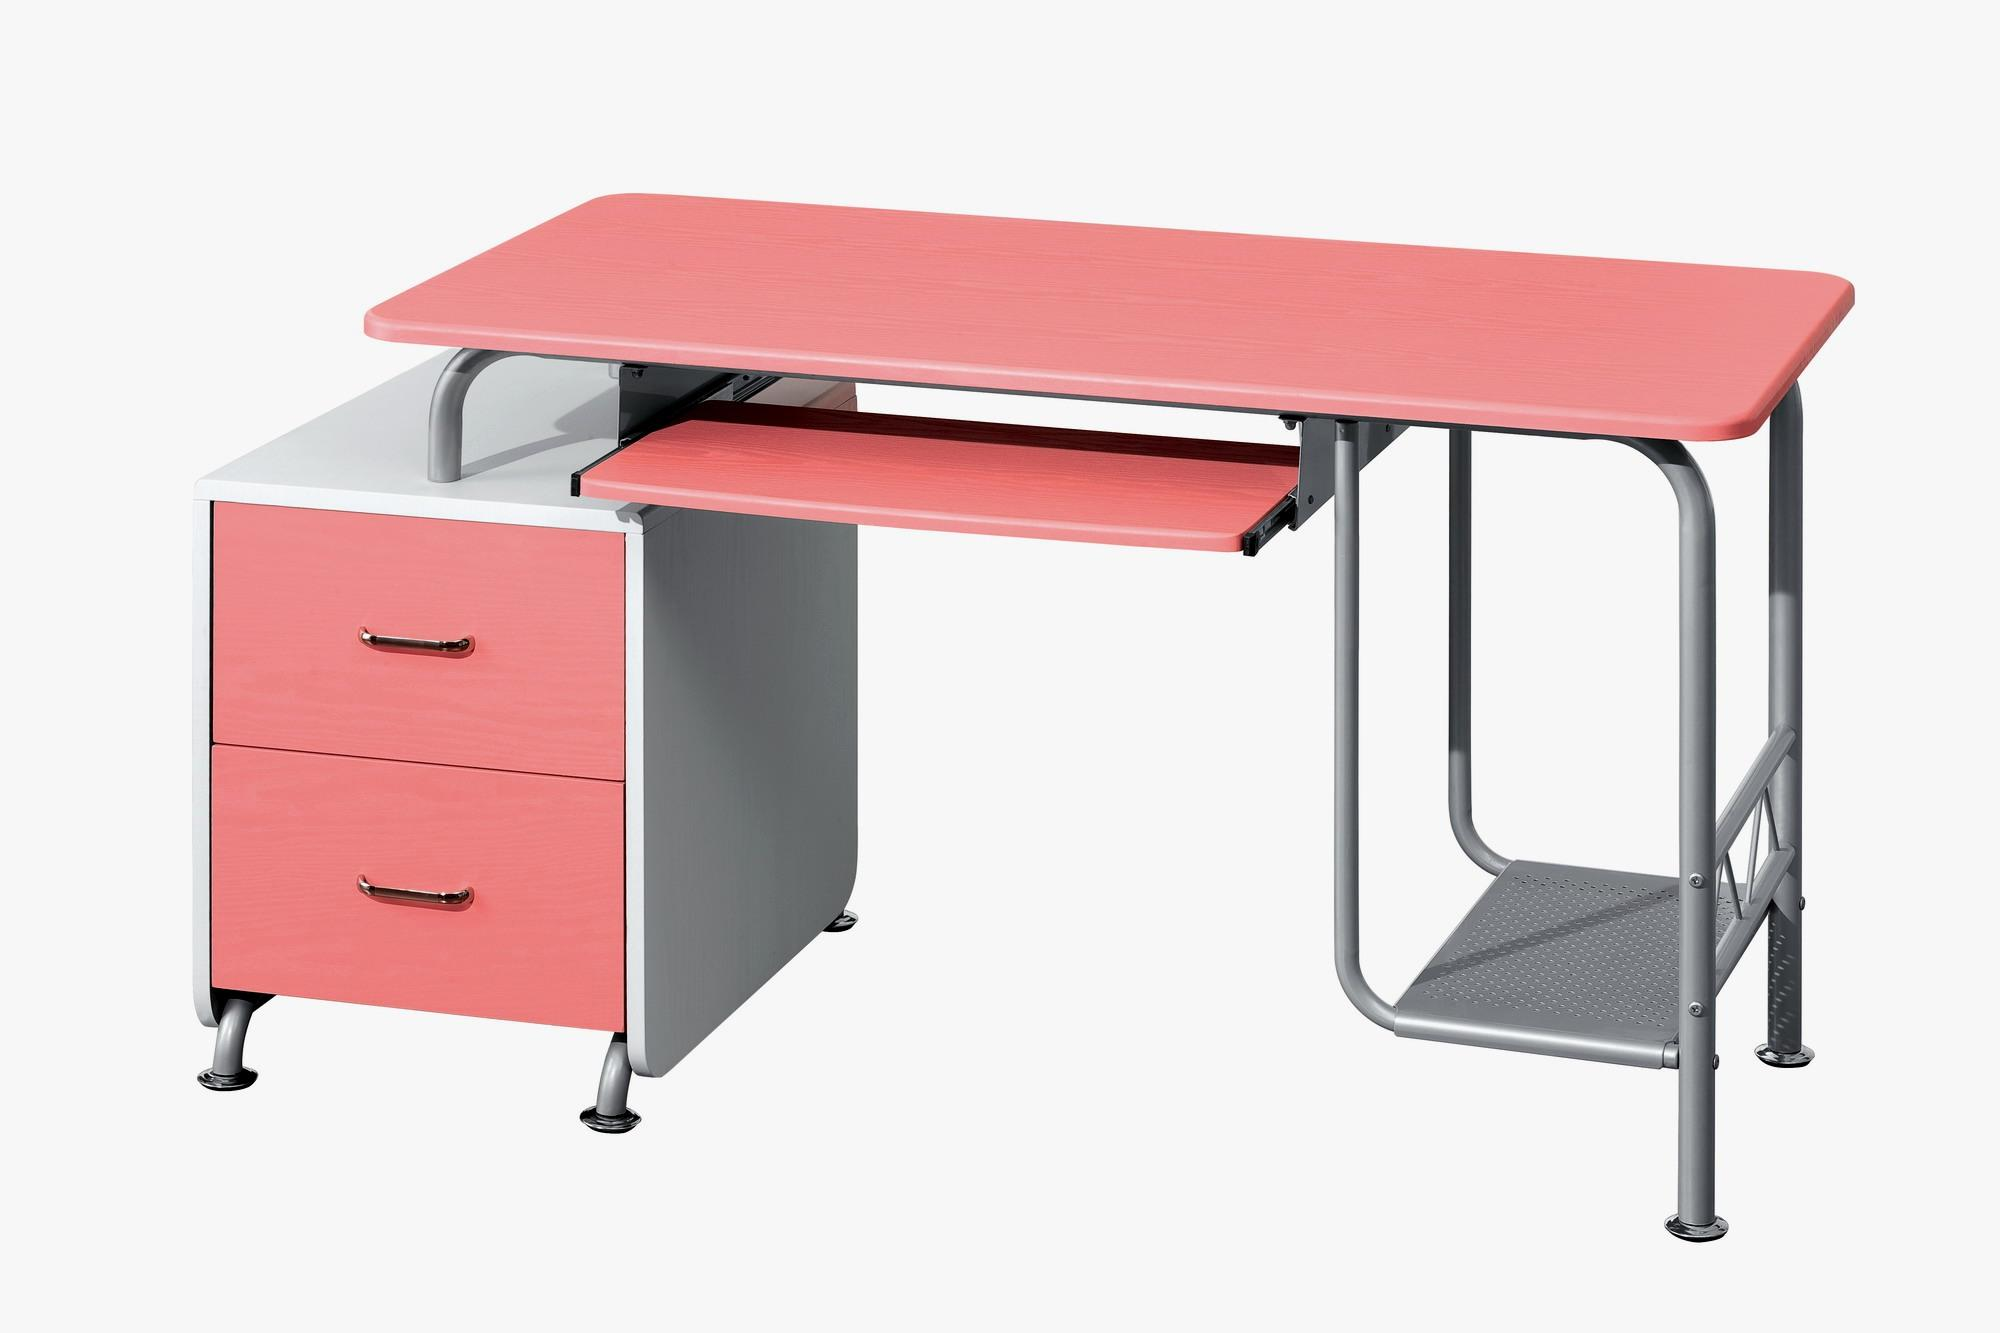 Superior TECHNI MOBILI Wood Computer Desk In Pink And White   Walmart.com